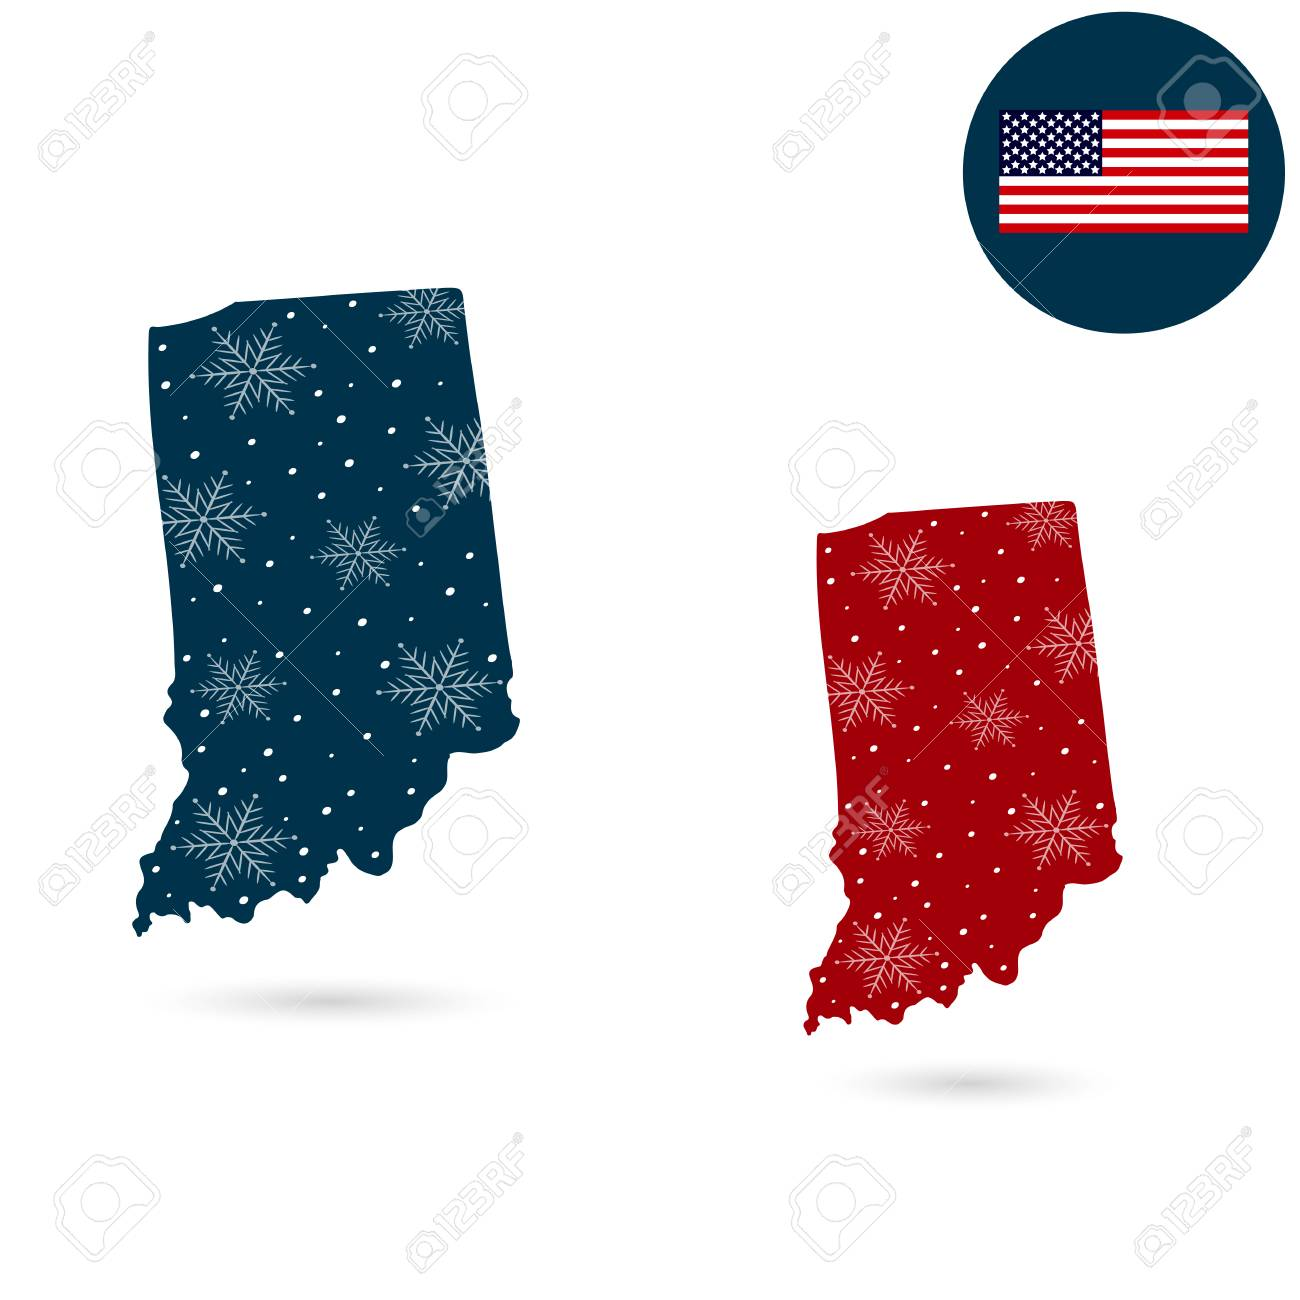 Map Of The U.S. State Of Indiana. Merry Christmas Royalty Free ...